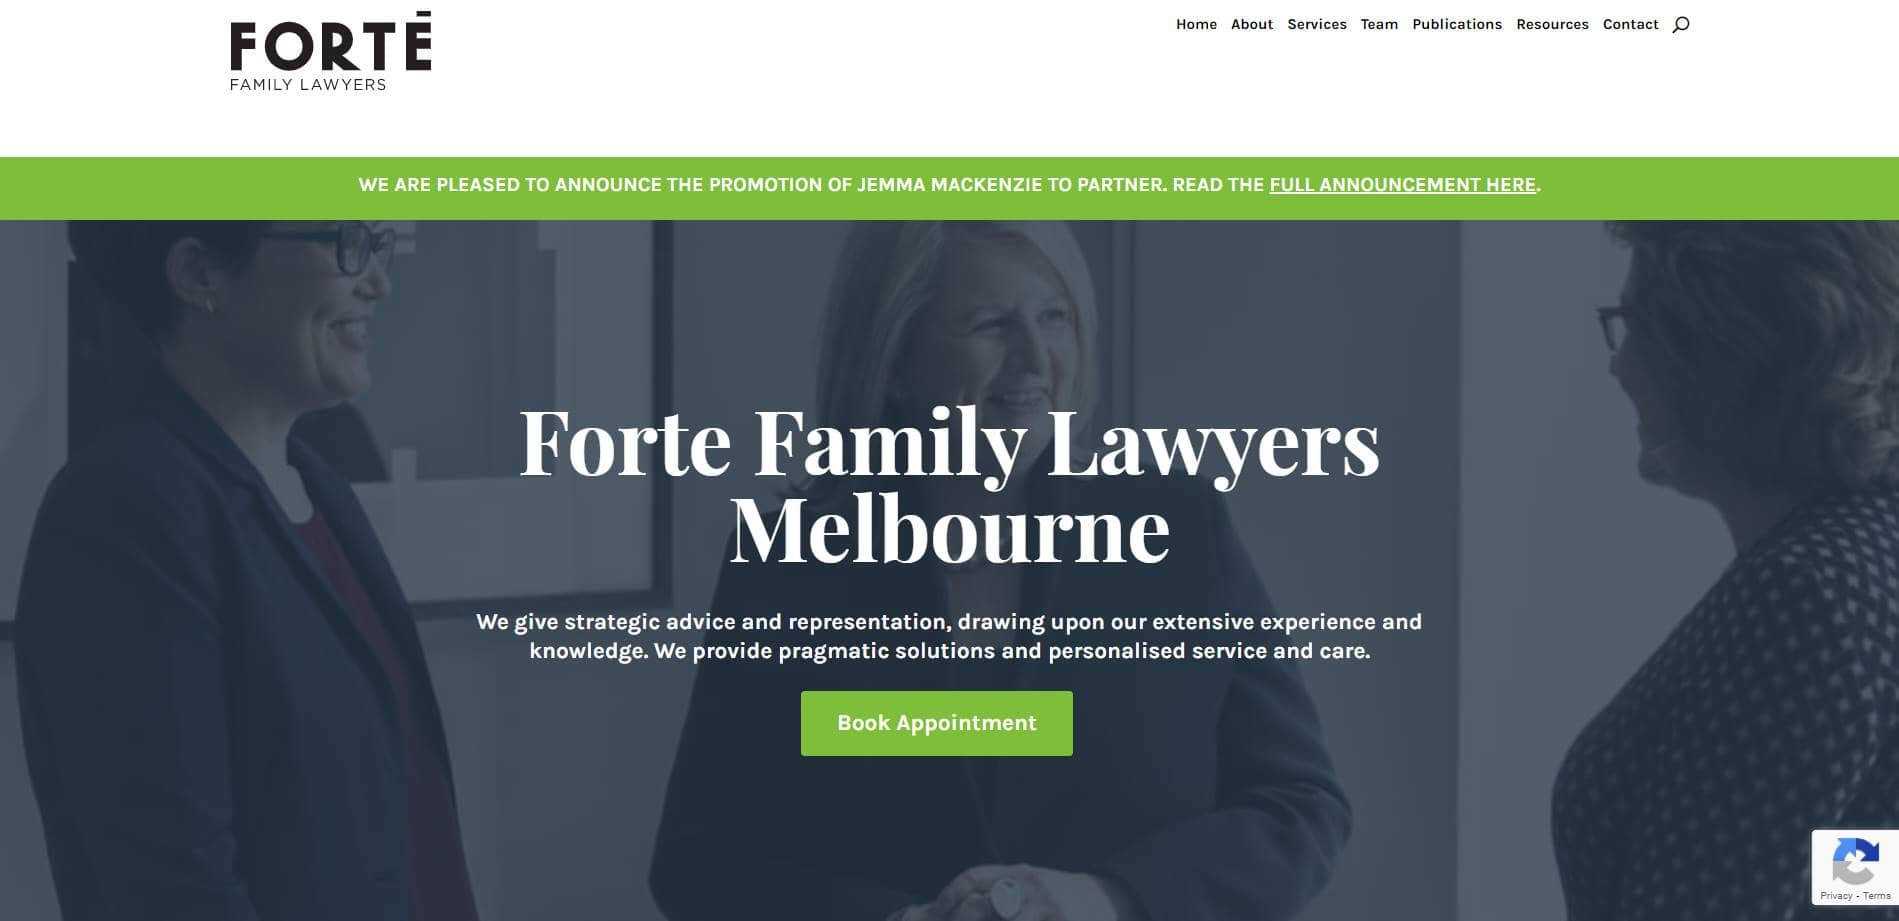 forte family lawyer